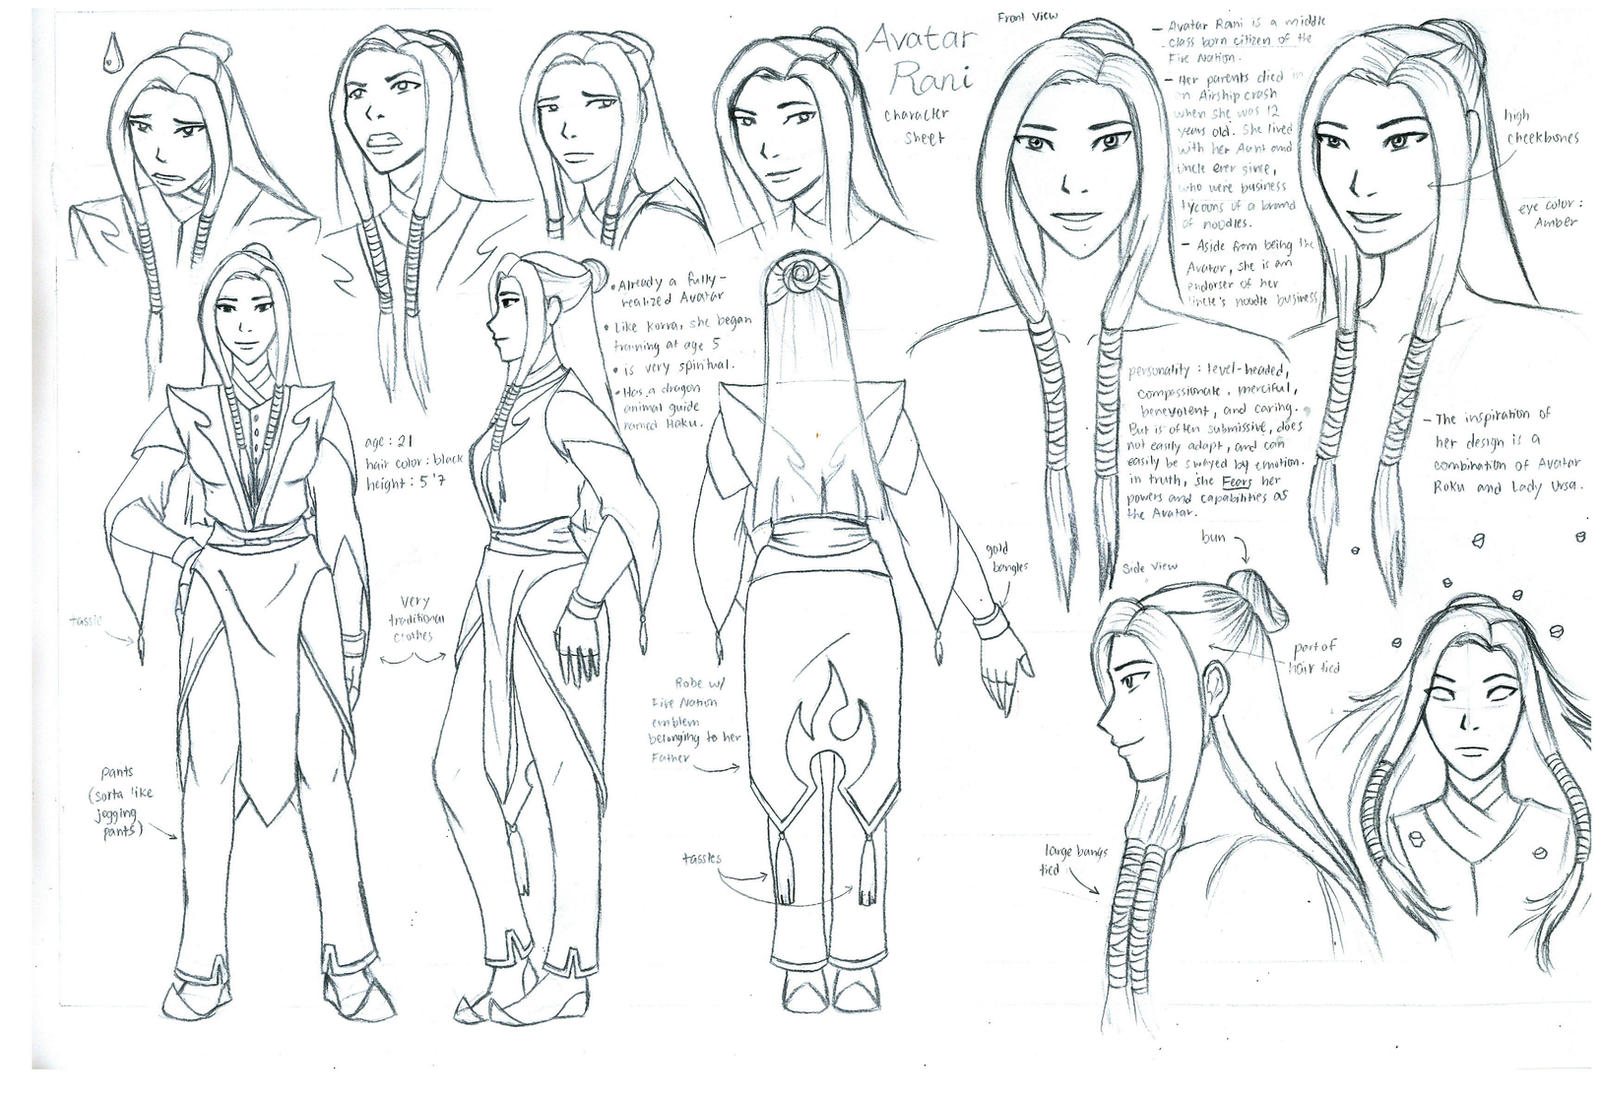 avatar character sheet avatar rani - character sheetmizzizabellasms on deviantart